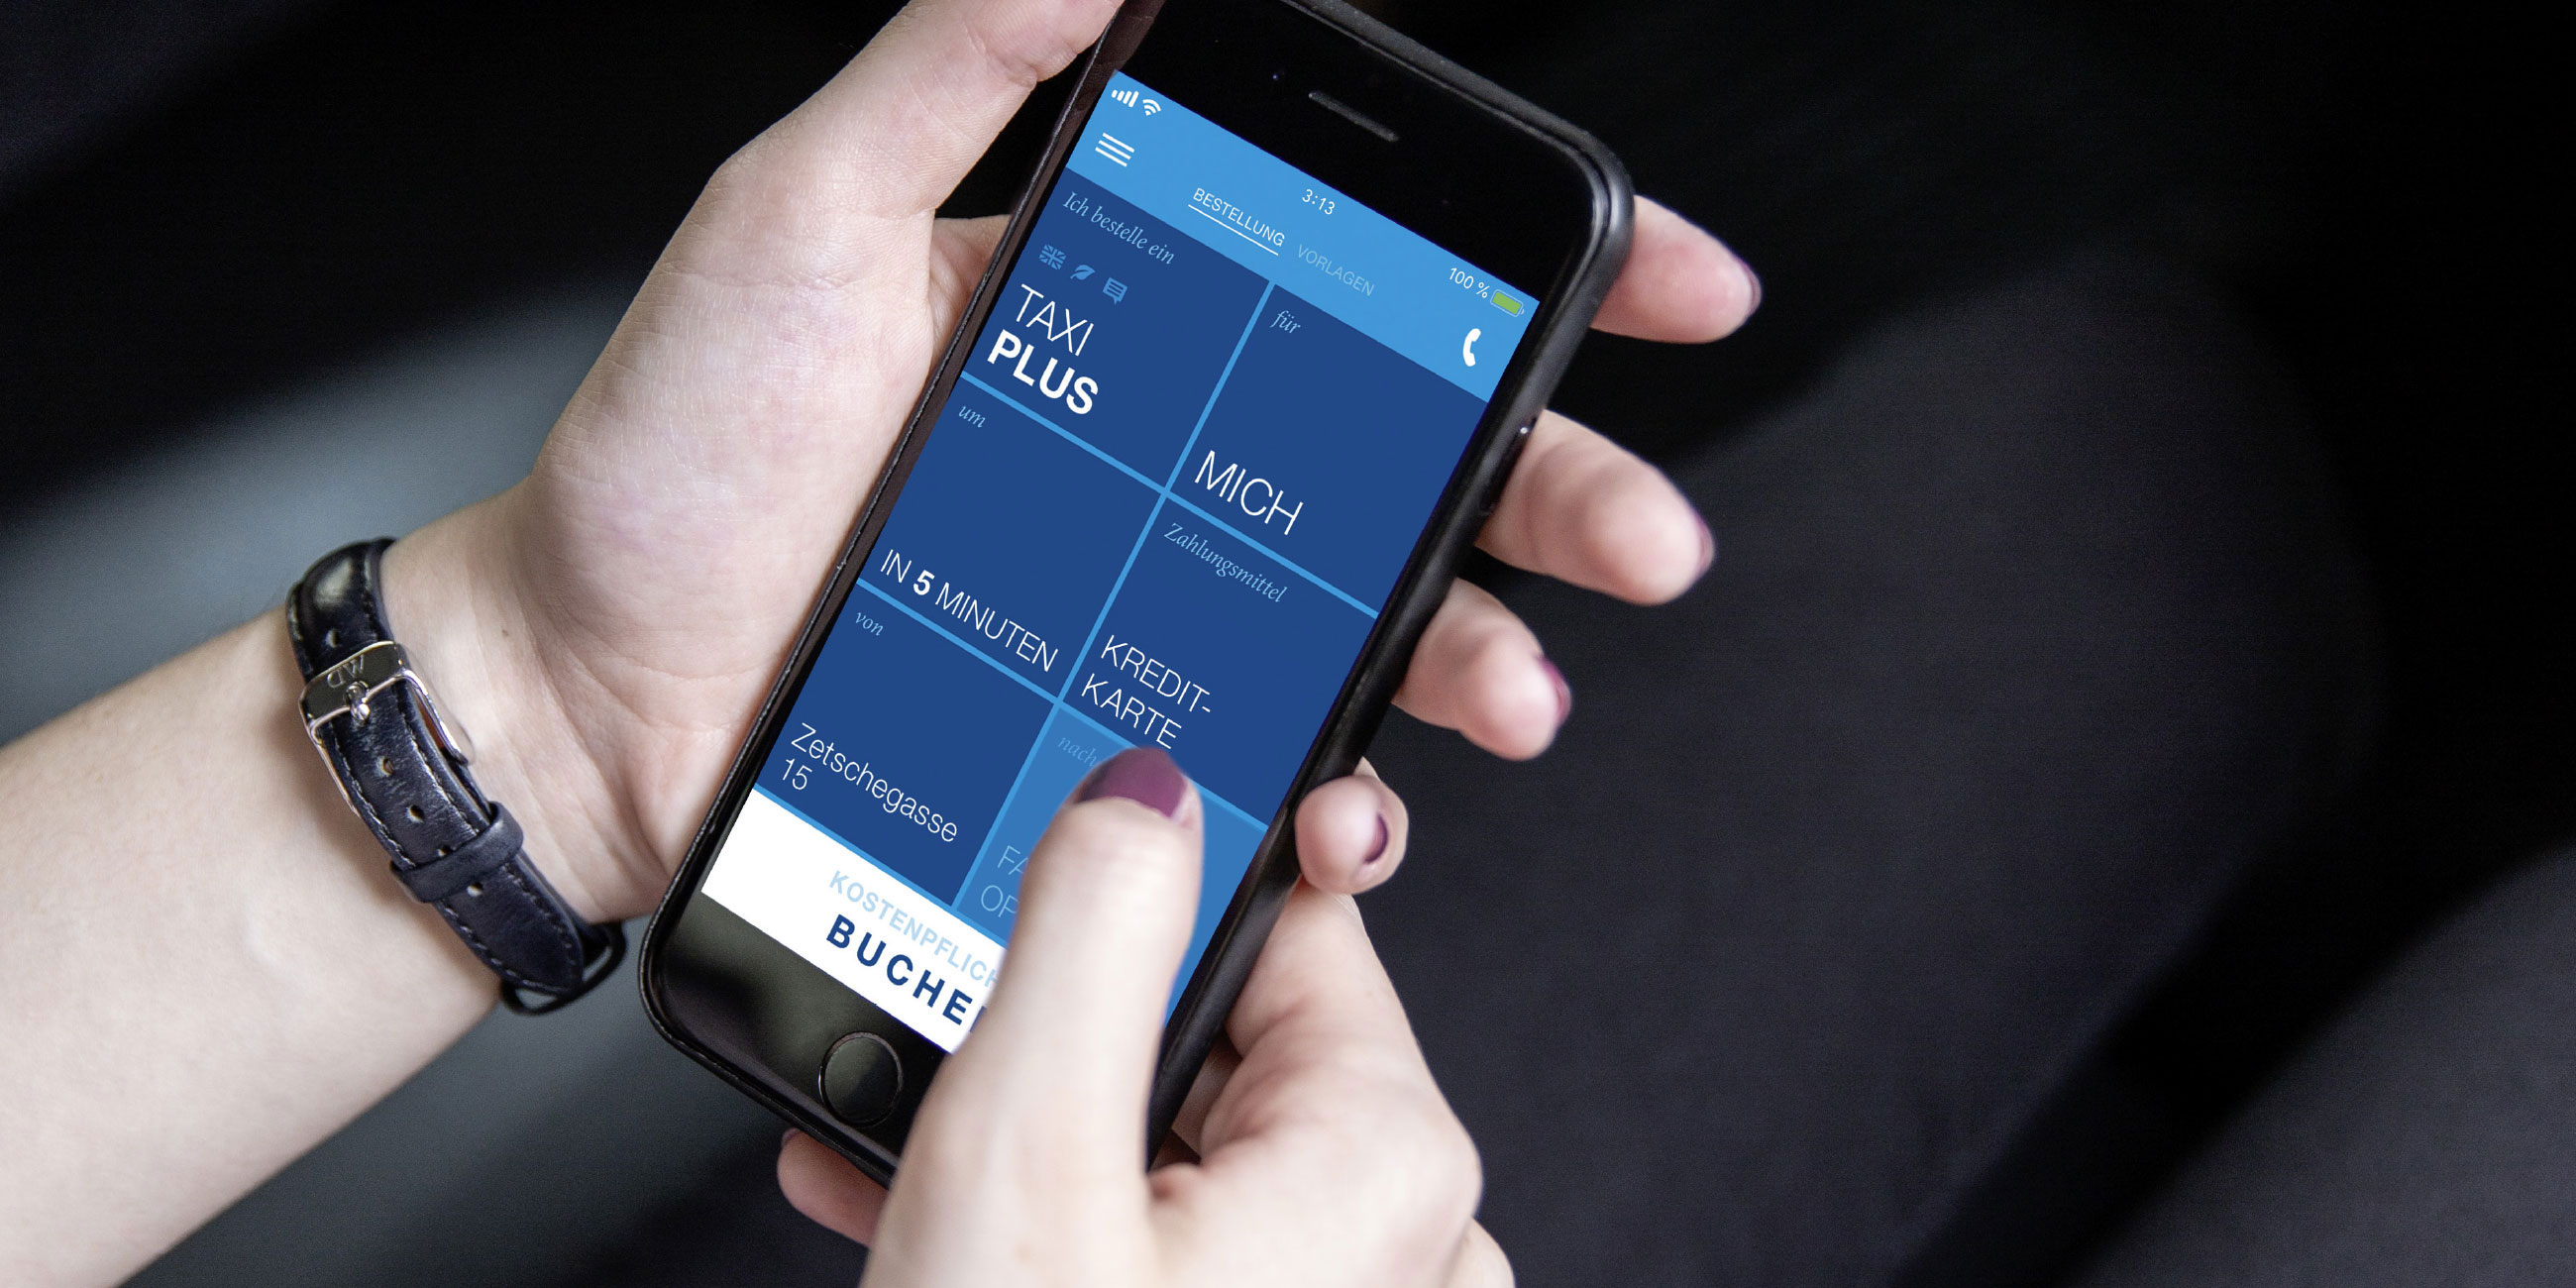 A lady holds a cellphone. We can see the Home Screen of the TaxiPlus App.